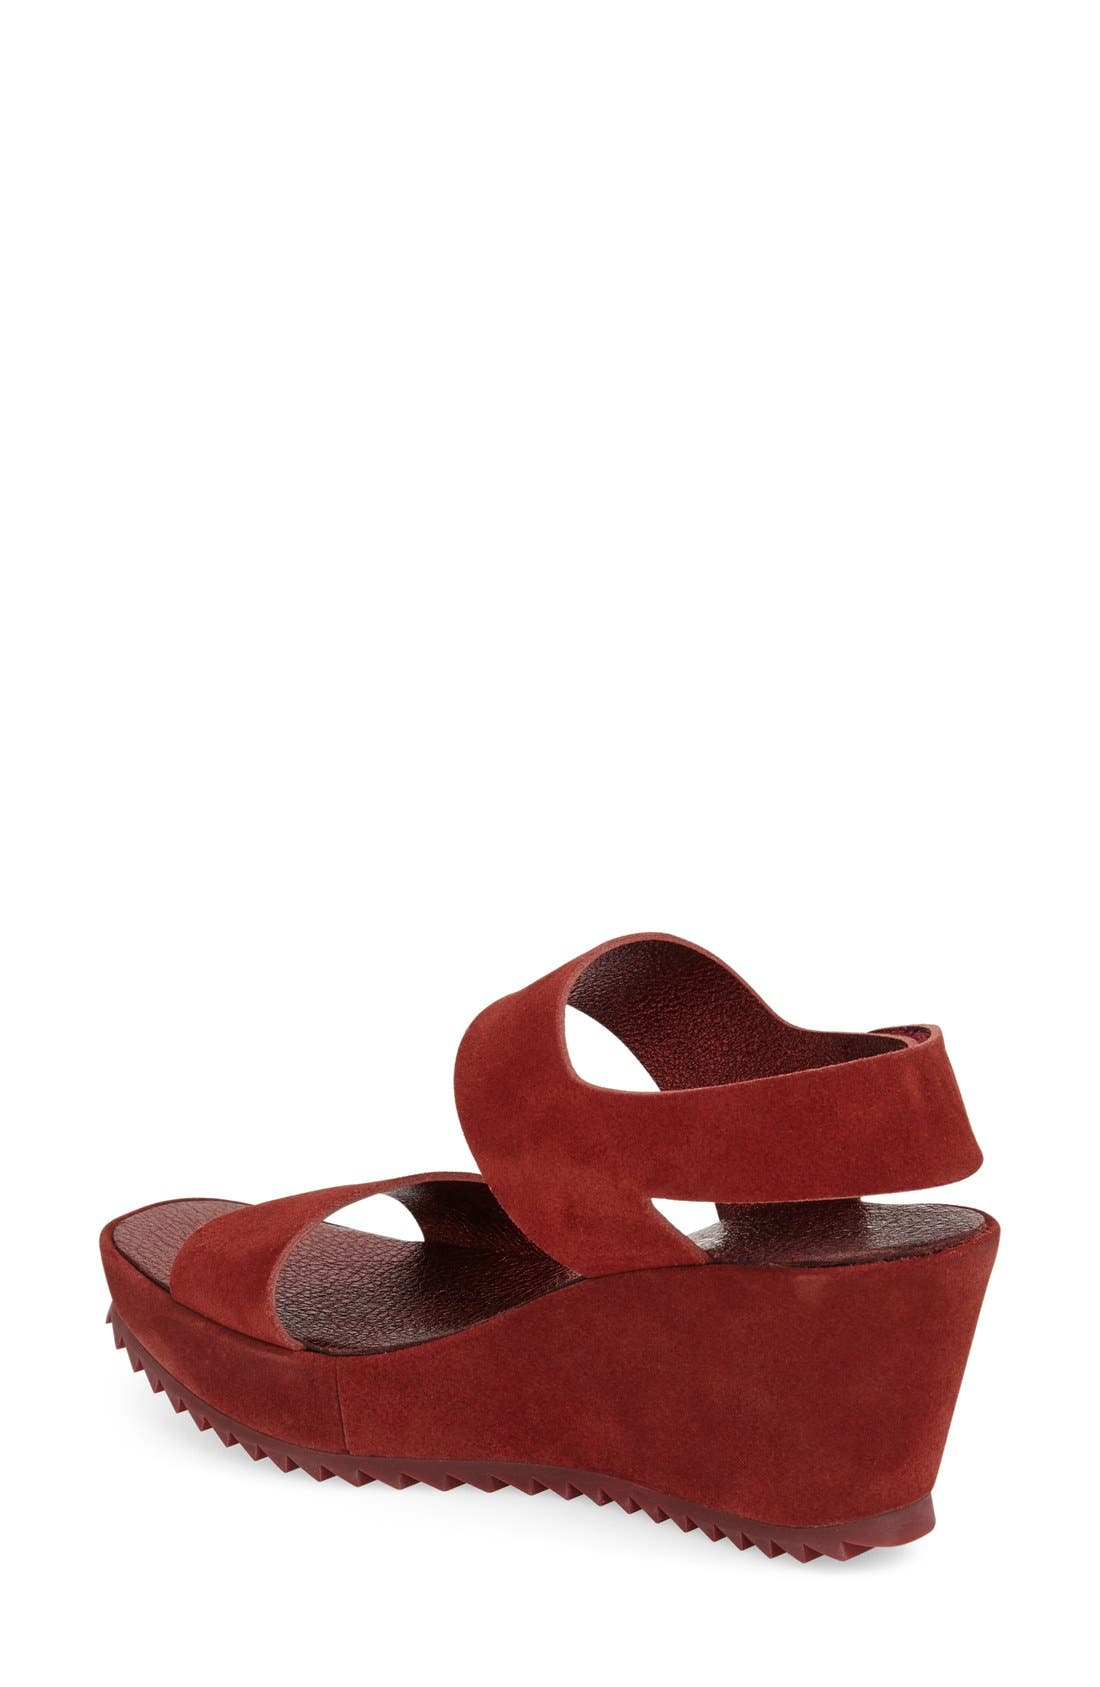 'Fiona' Wedge Sandal,                             Alternate thumbnail 2, color,                             Red Leather